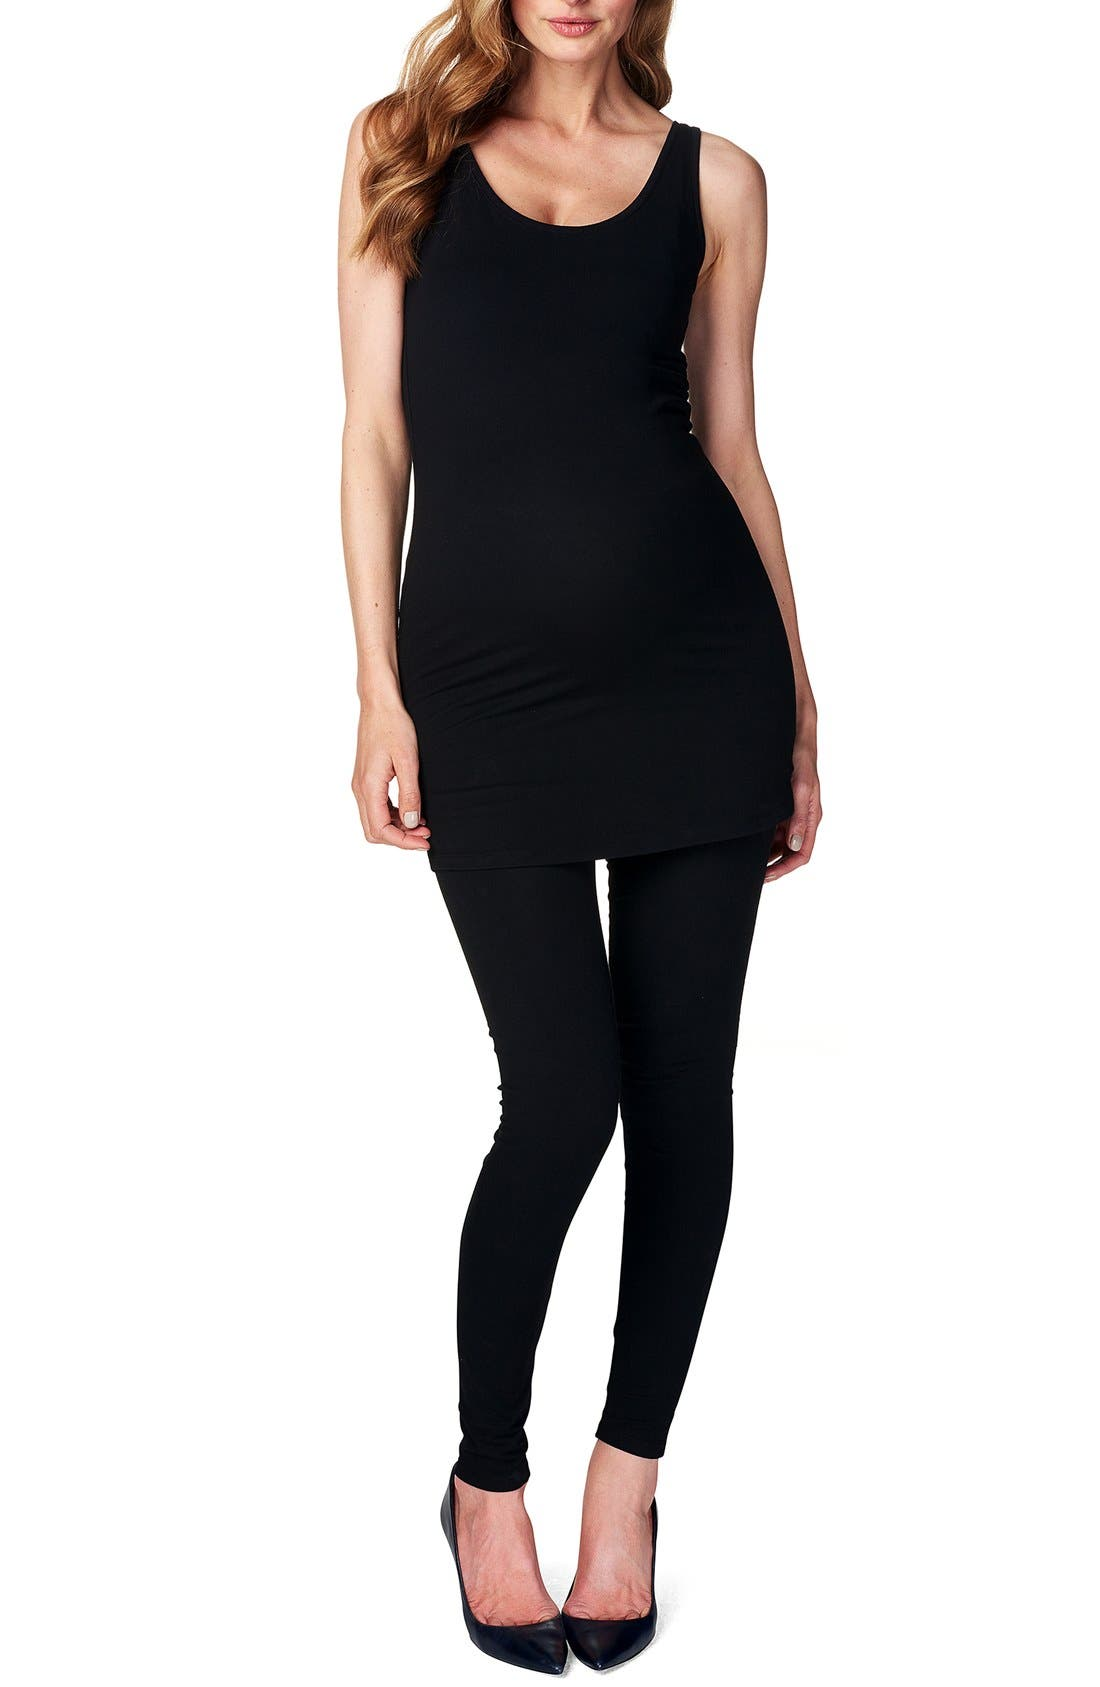 NOPPIES 'Amsterdam' Scoop Neck Long Maternity Top